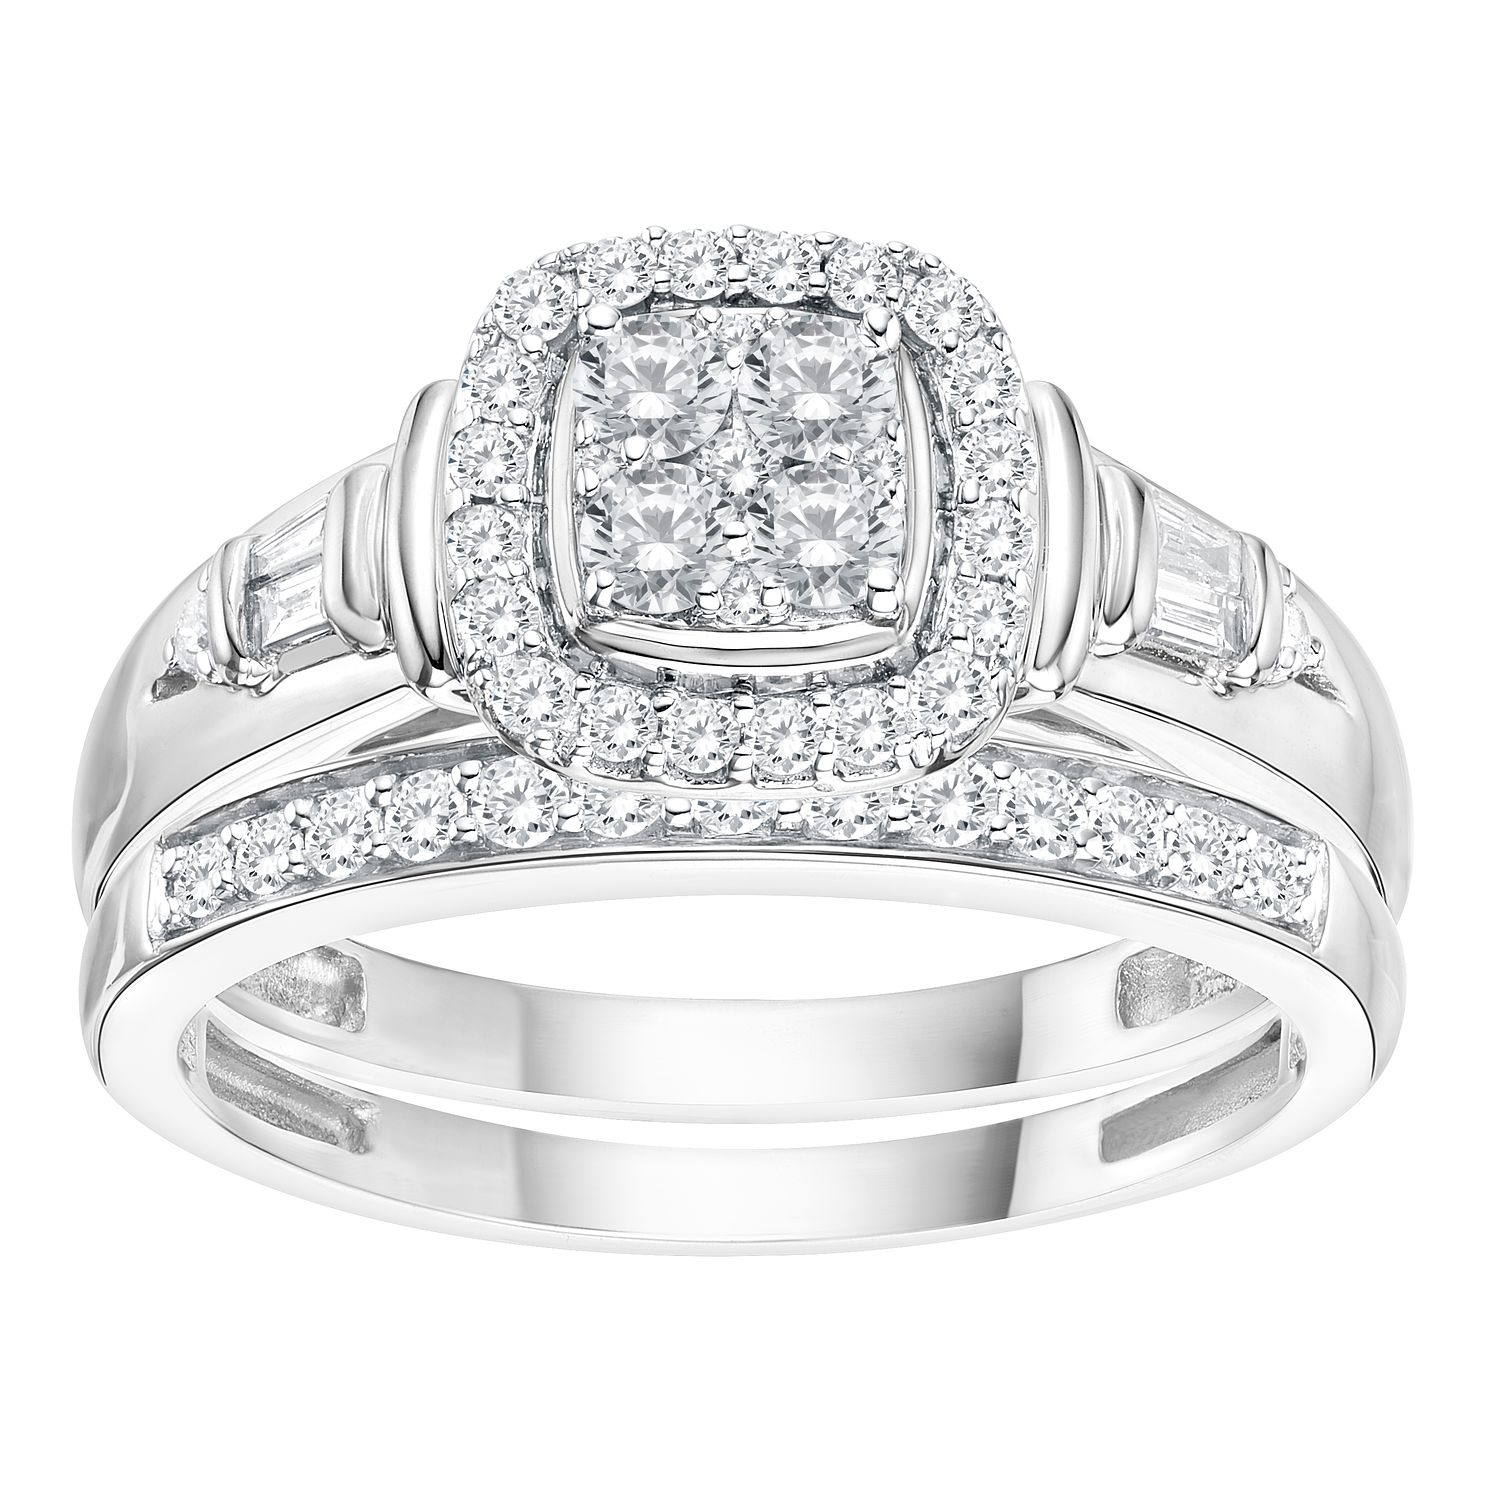 ring engagement winters jewelers margot diamond greenwich st erika